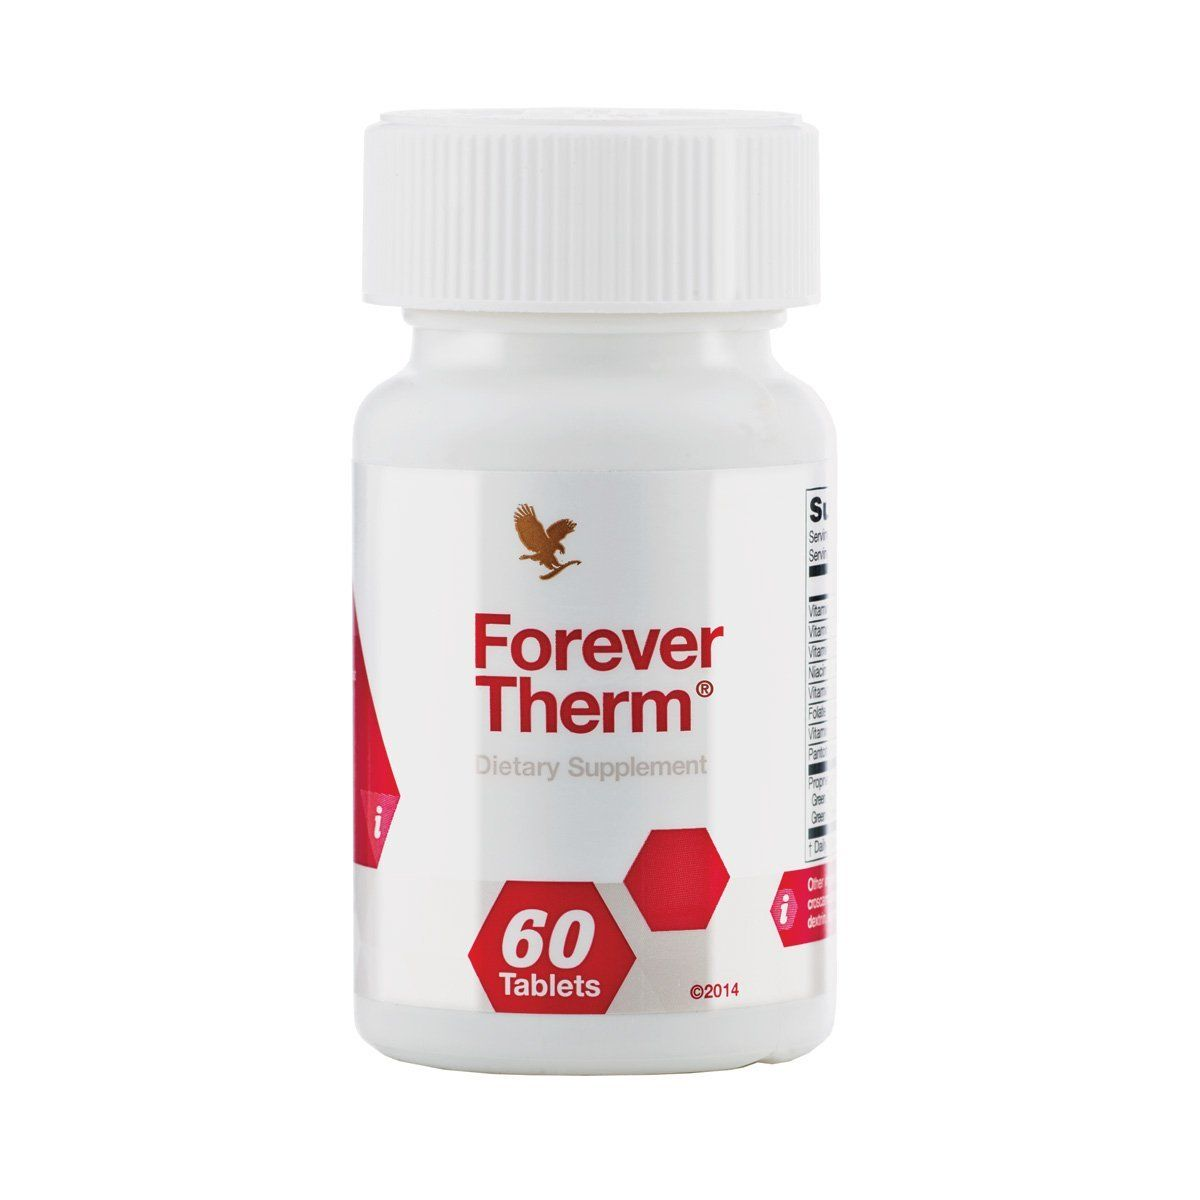 Supliment alimentar Forever Therm, 60 tablete